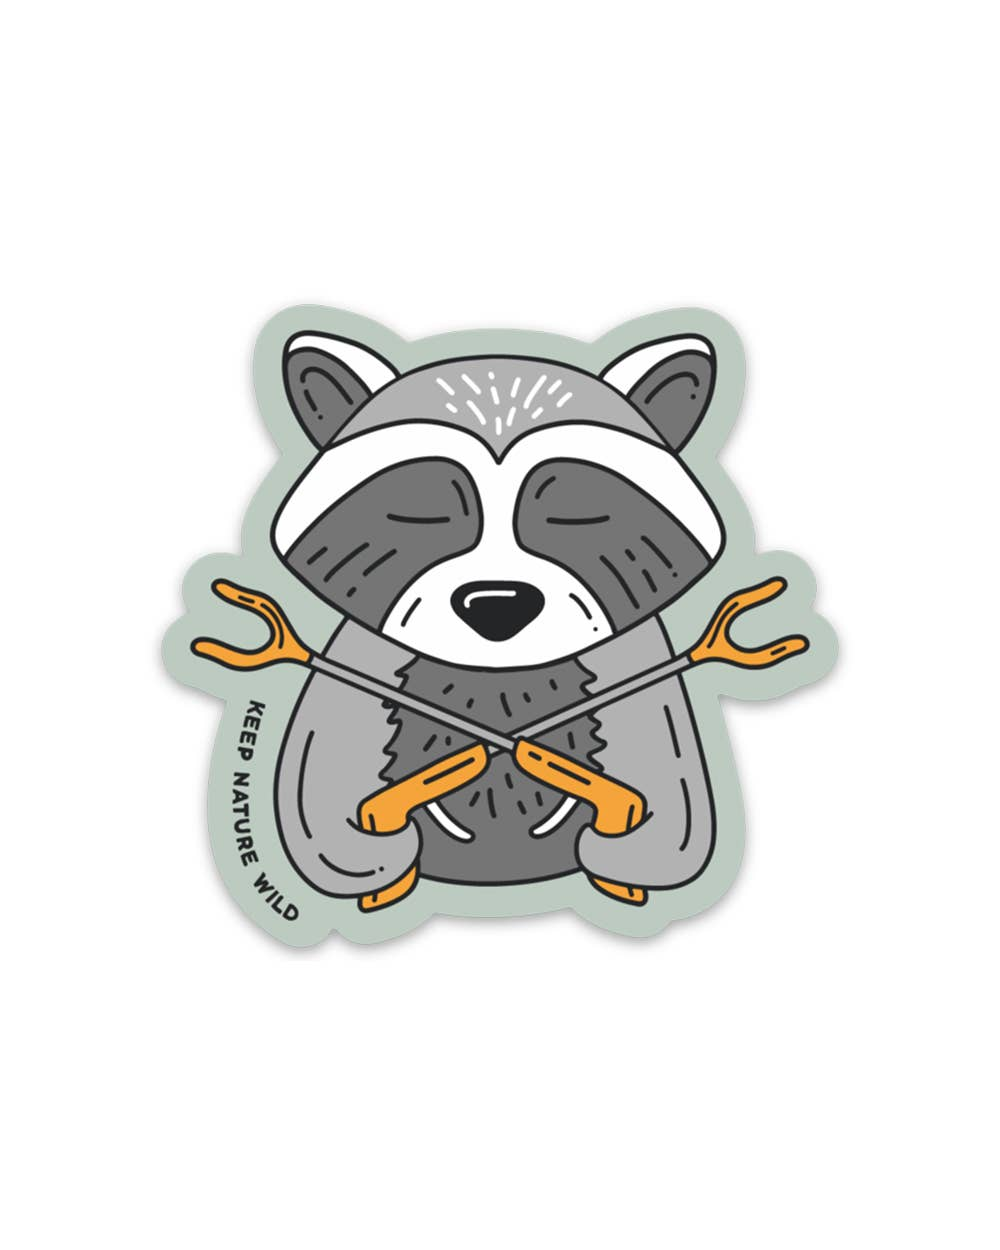 Trash Panda | Sticker - for sale by Succy Crafts